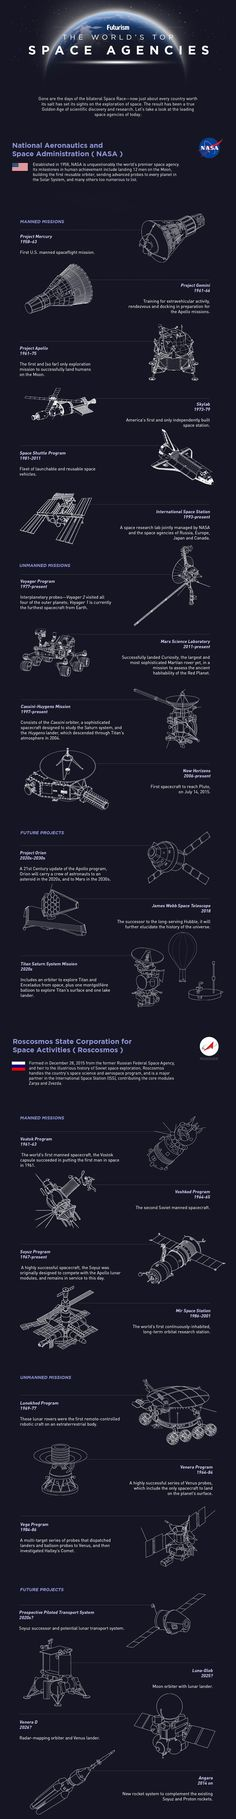 The high frontier's getting crowded—a new space race is underway.   Here's a look at the past, present, and future projects of the world's top space agencies.  http://futurism.com/images/the-worlds-top-space-agencies-infographic/?utm_campaign=coschedule&utm_source=pinterest&utm_medium=Futurism&utm_content=The%20World%27s%20Top%20Space%20Agencies%20%5BINFOGRAPHIC%5D